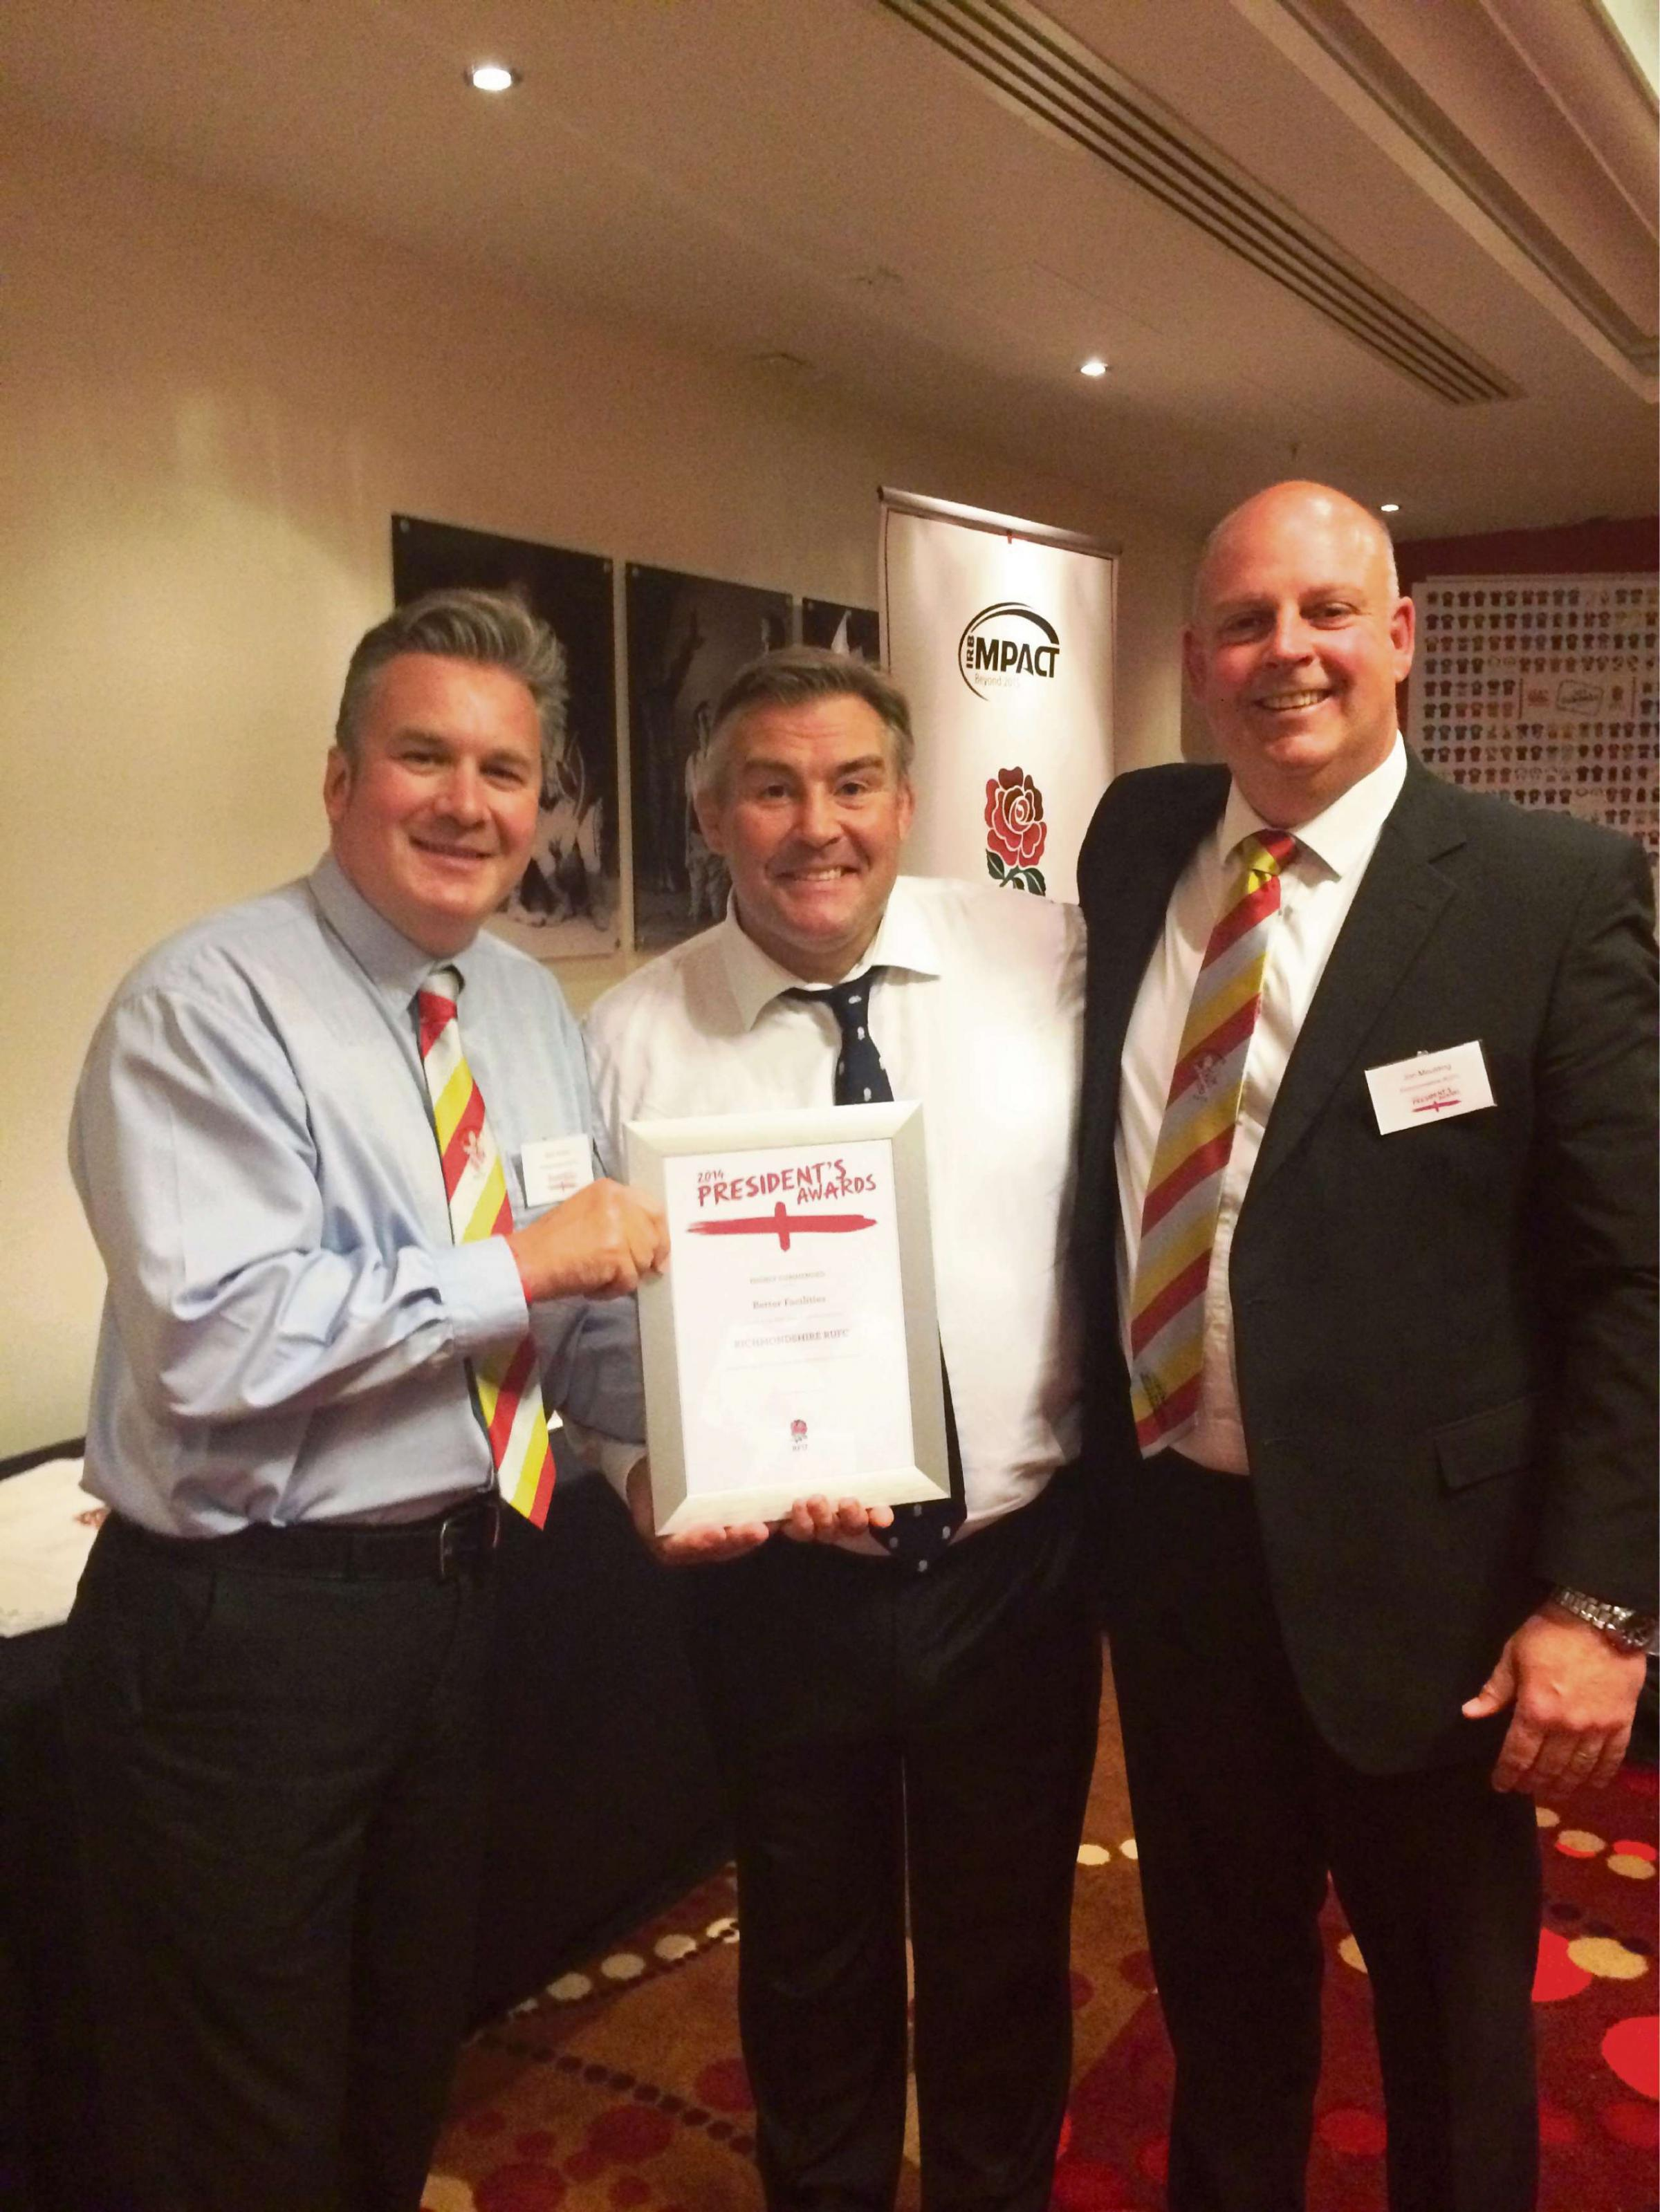 MOST IMPROVED: Richmondshire Rugby Club president Nick Hunter (left), future RFU presidentJason Leonard and Richmondshire